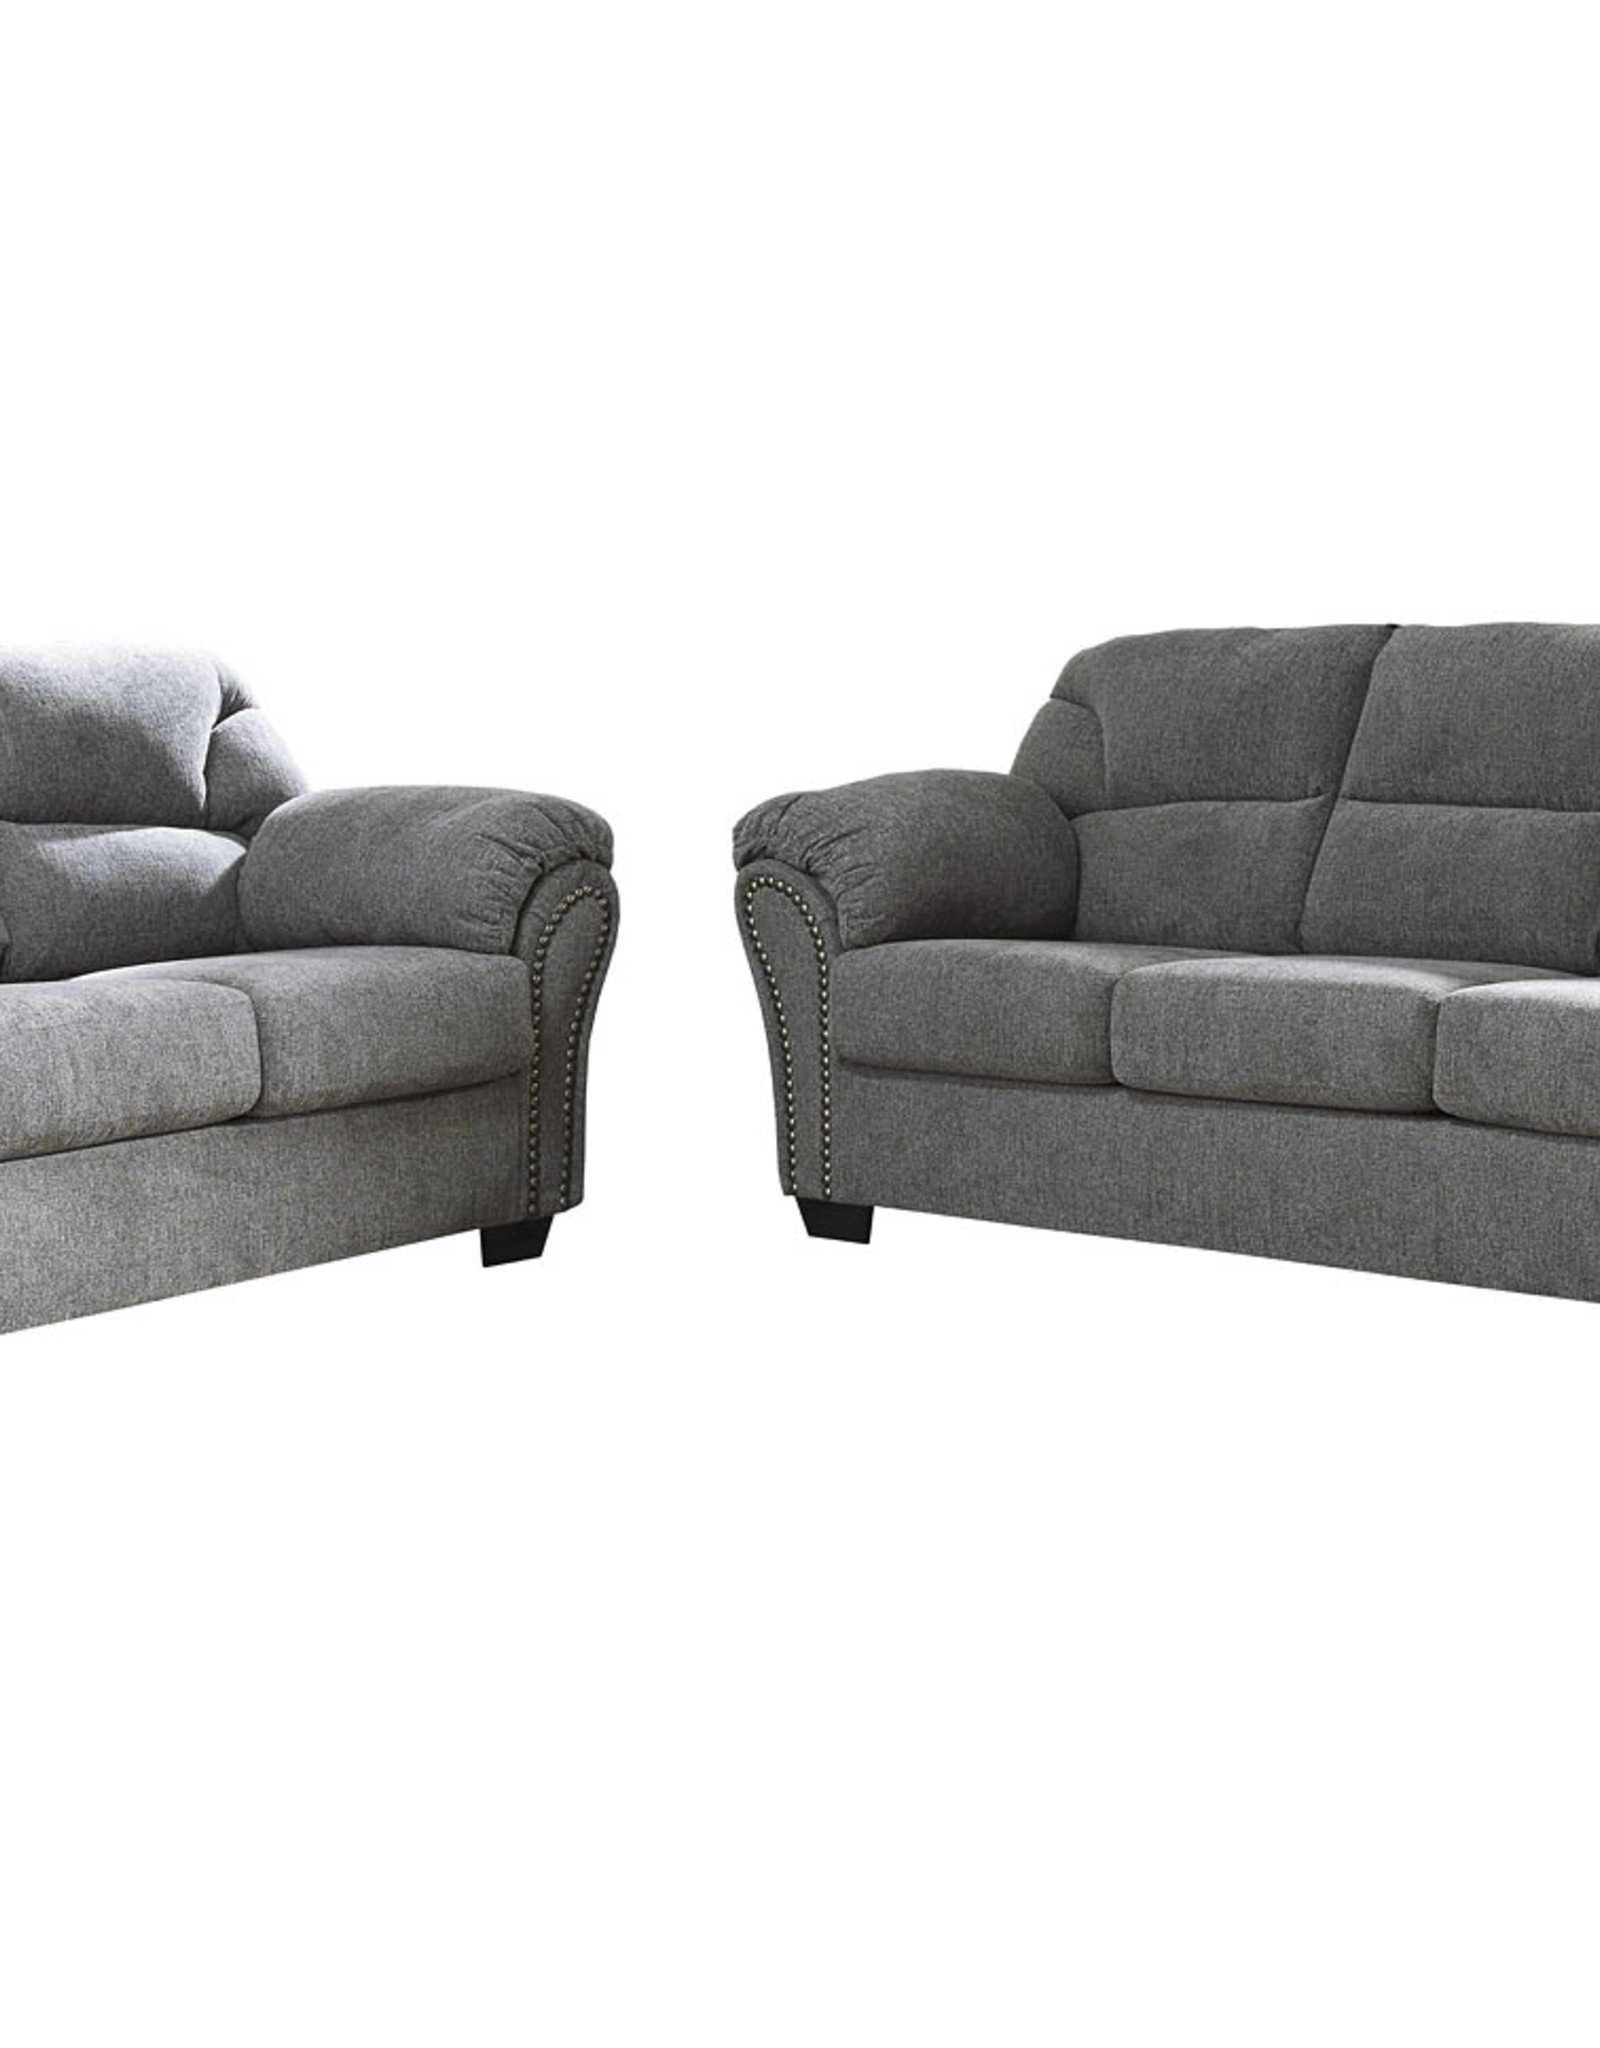 CLS Allmaxx Pewter Sofa and Loveseat